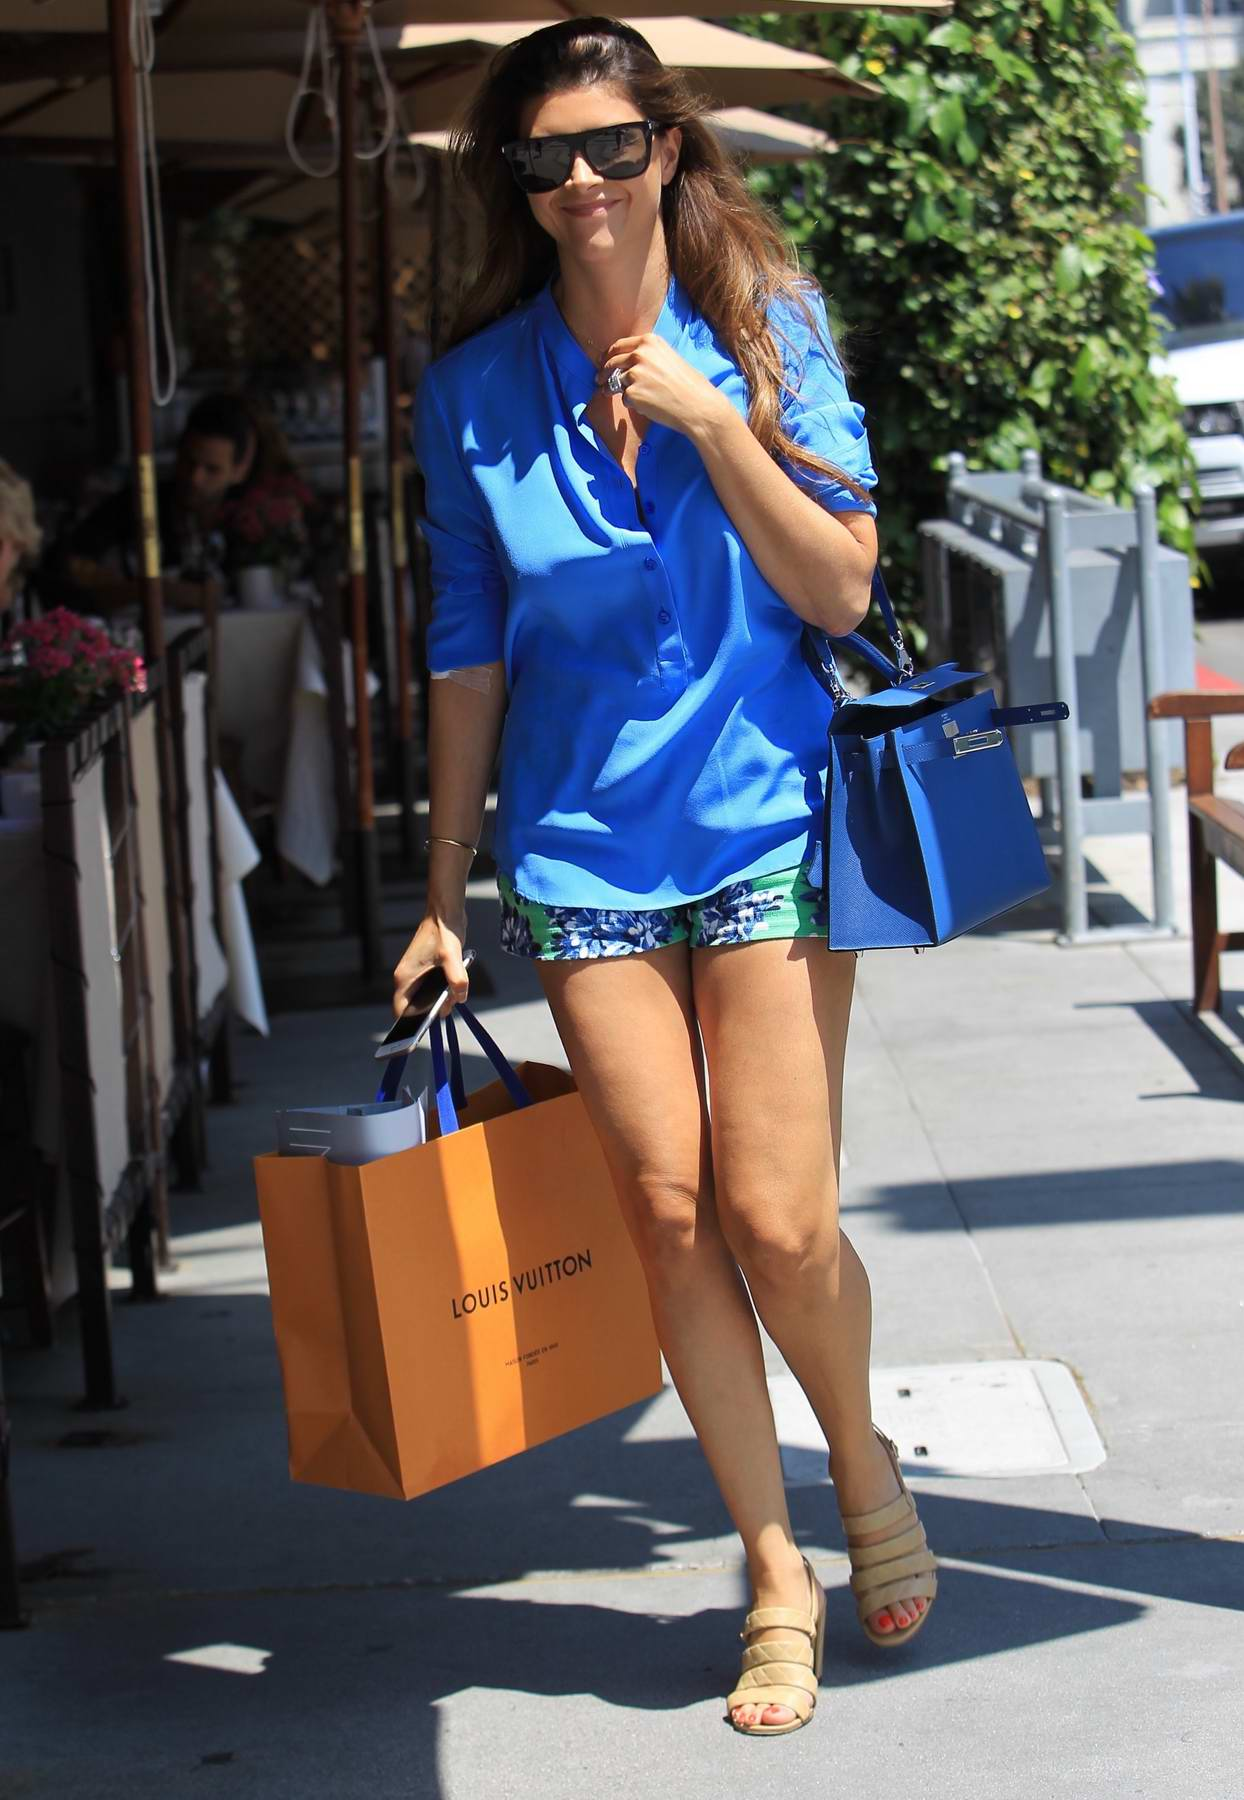 Shiva Safai in a bright blue shirt and shorts out shopping in Beverly Hills, Los Angeles